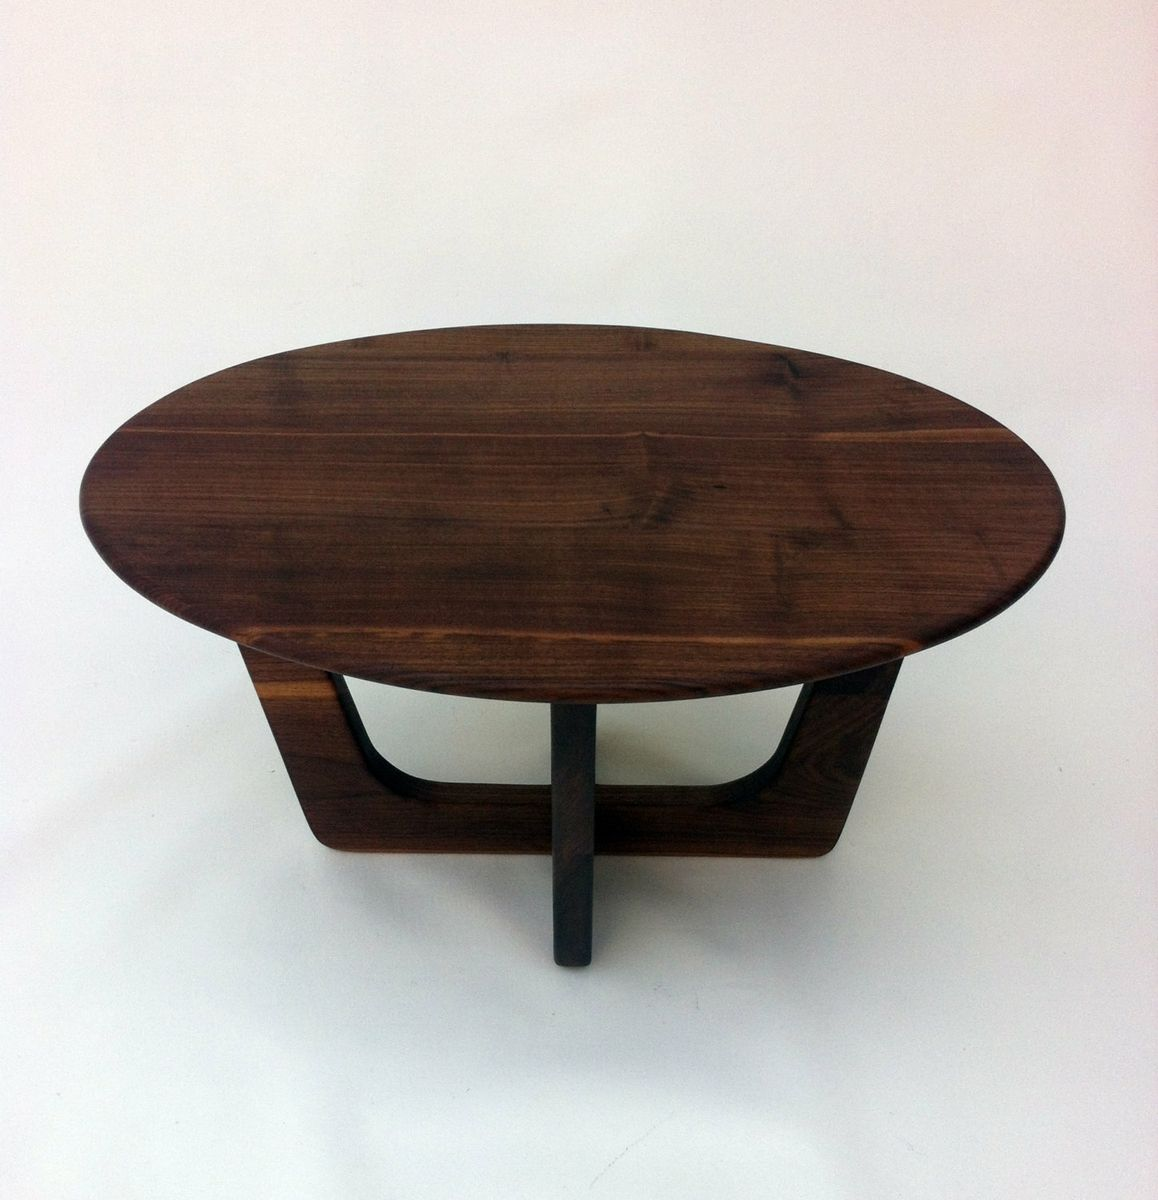 buy a hand made coffeecocktail table made from solid walnut in  - custom made coffeecocktail table made from solid walnut in atomic eraadrian pearsall inspired